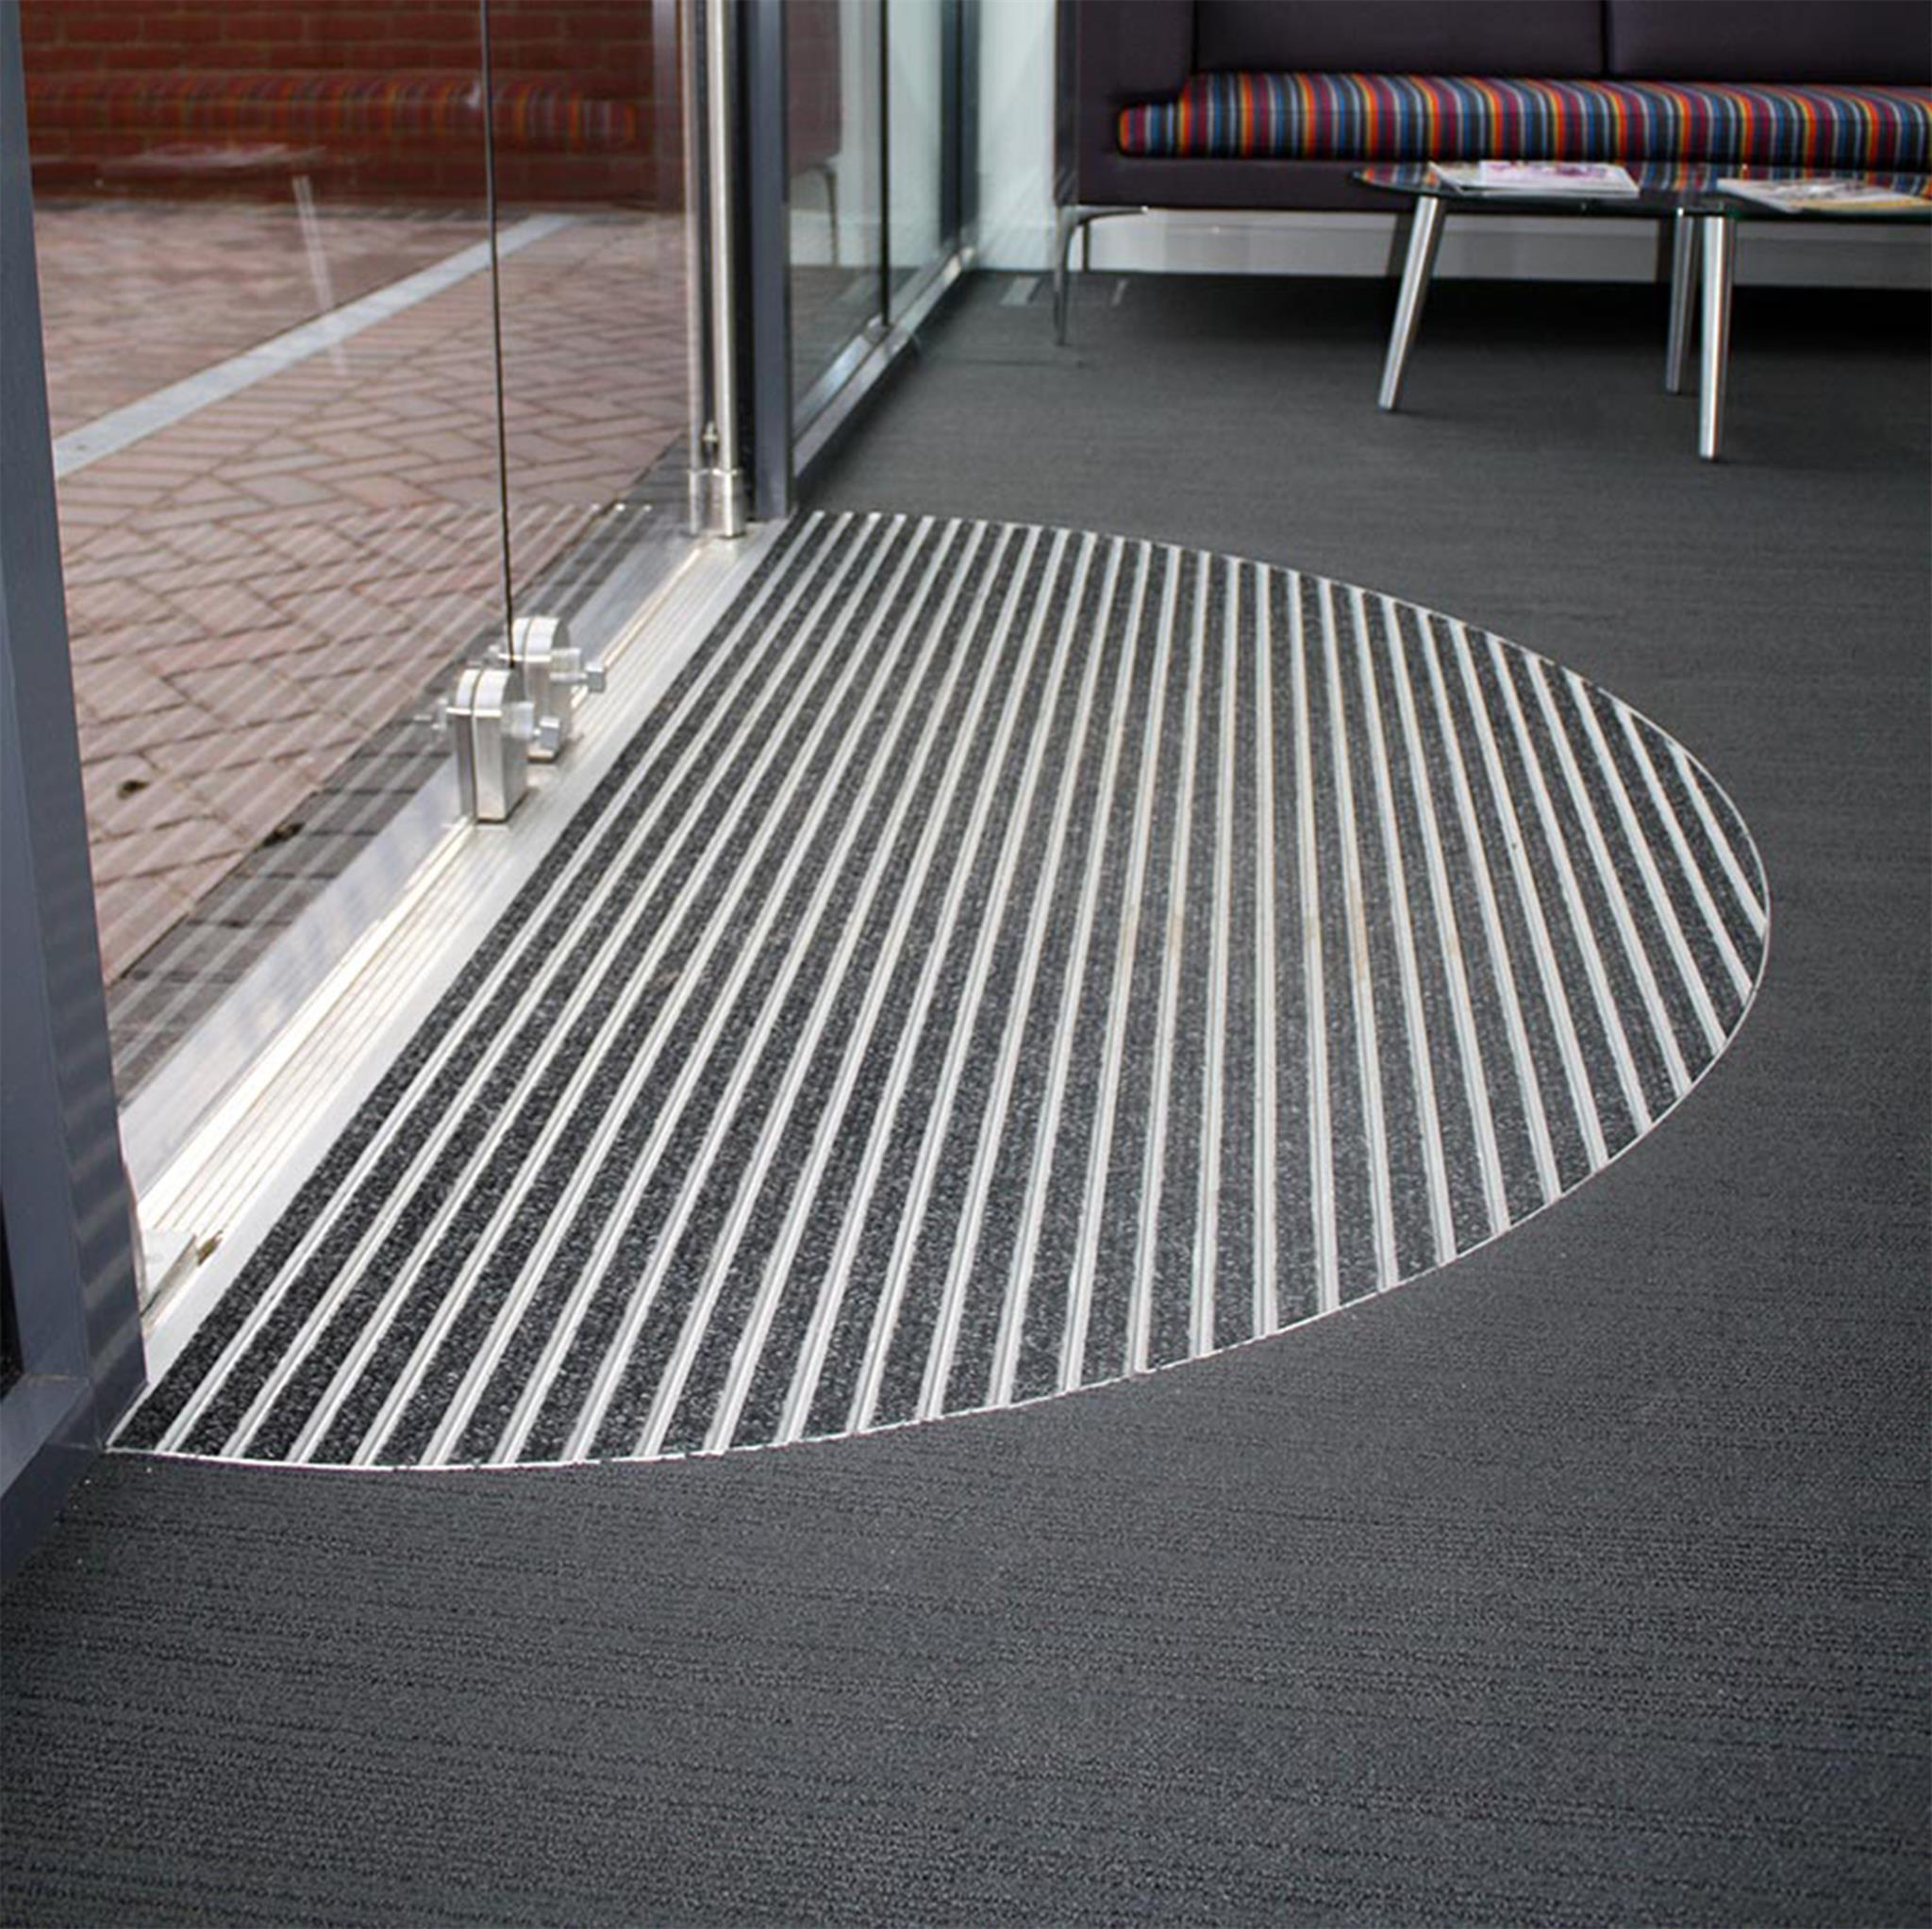 Barrier Entrance Matting